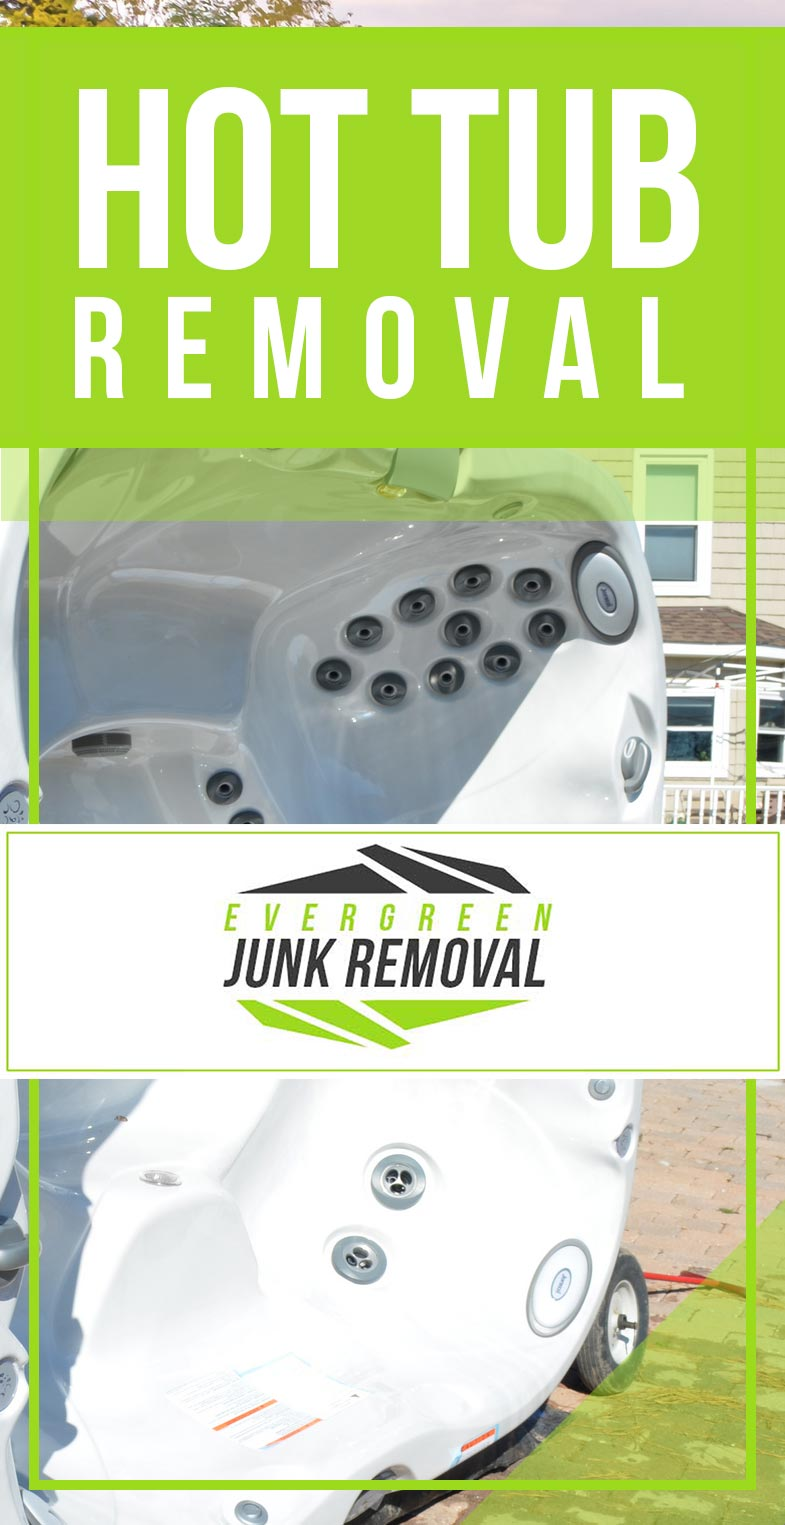 Friendswood Hot Tub Removal